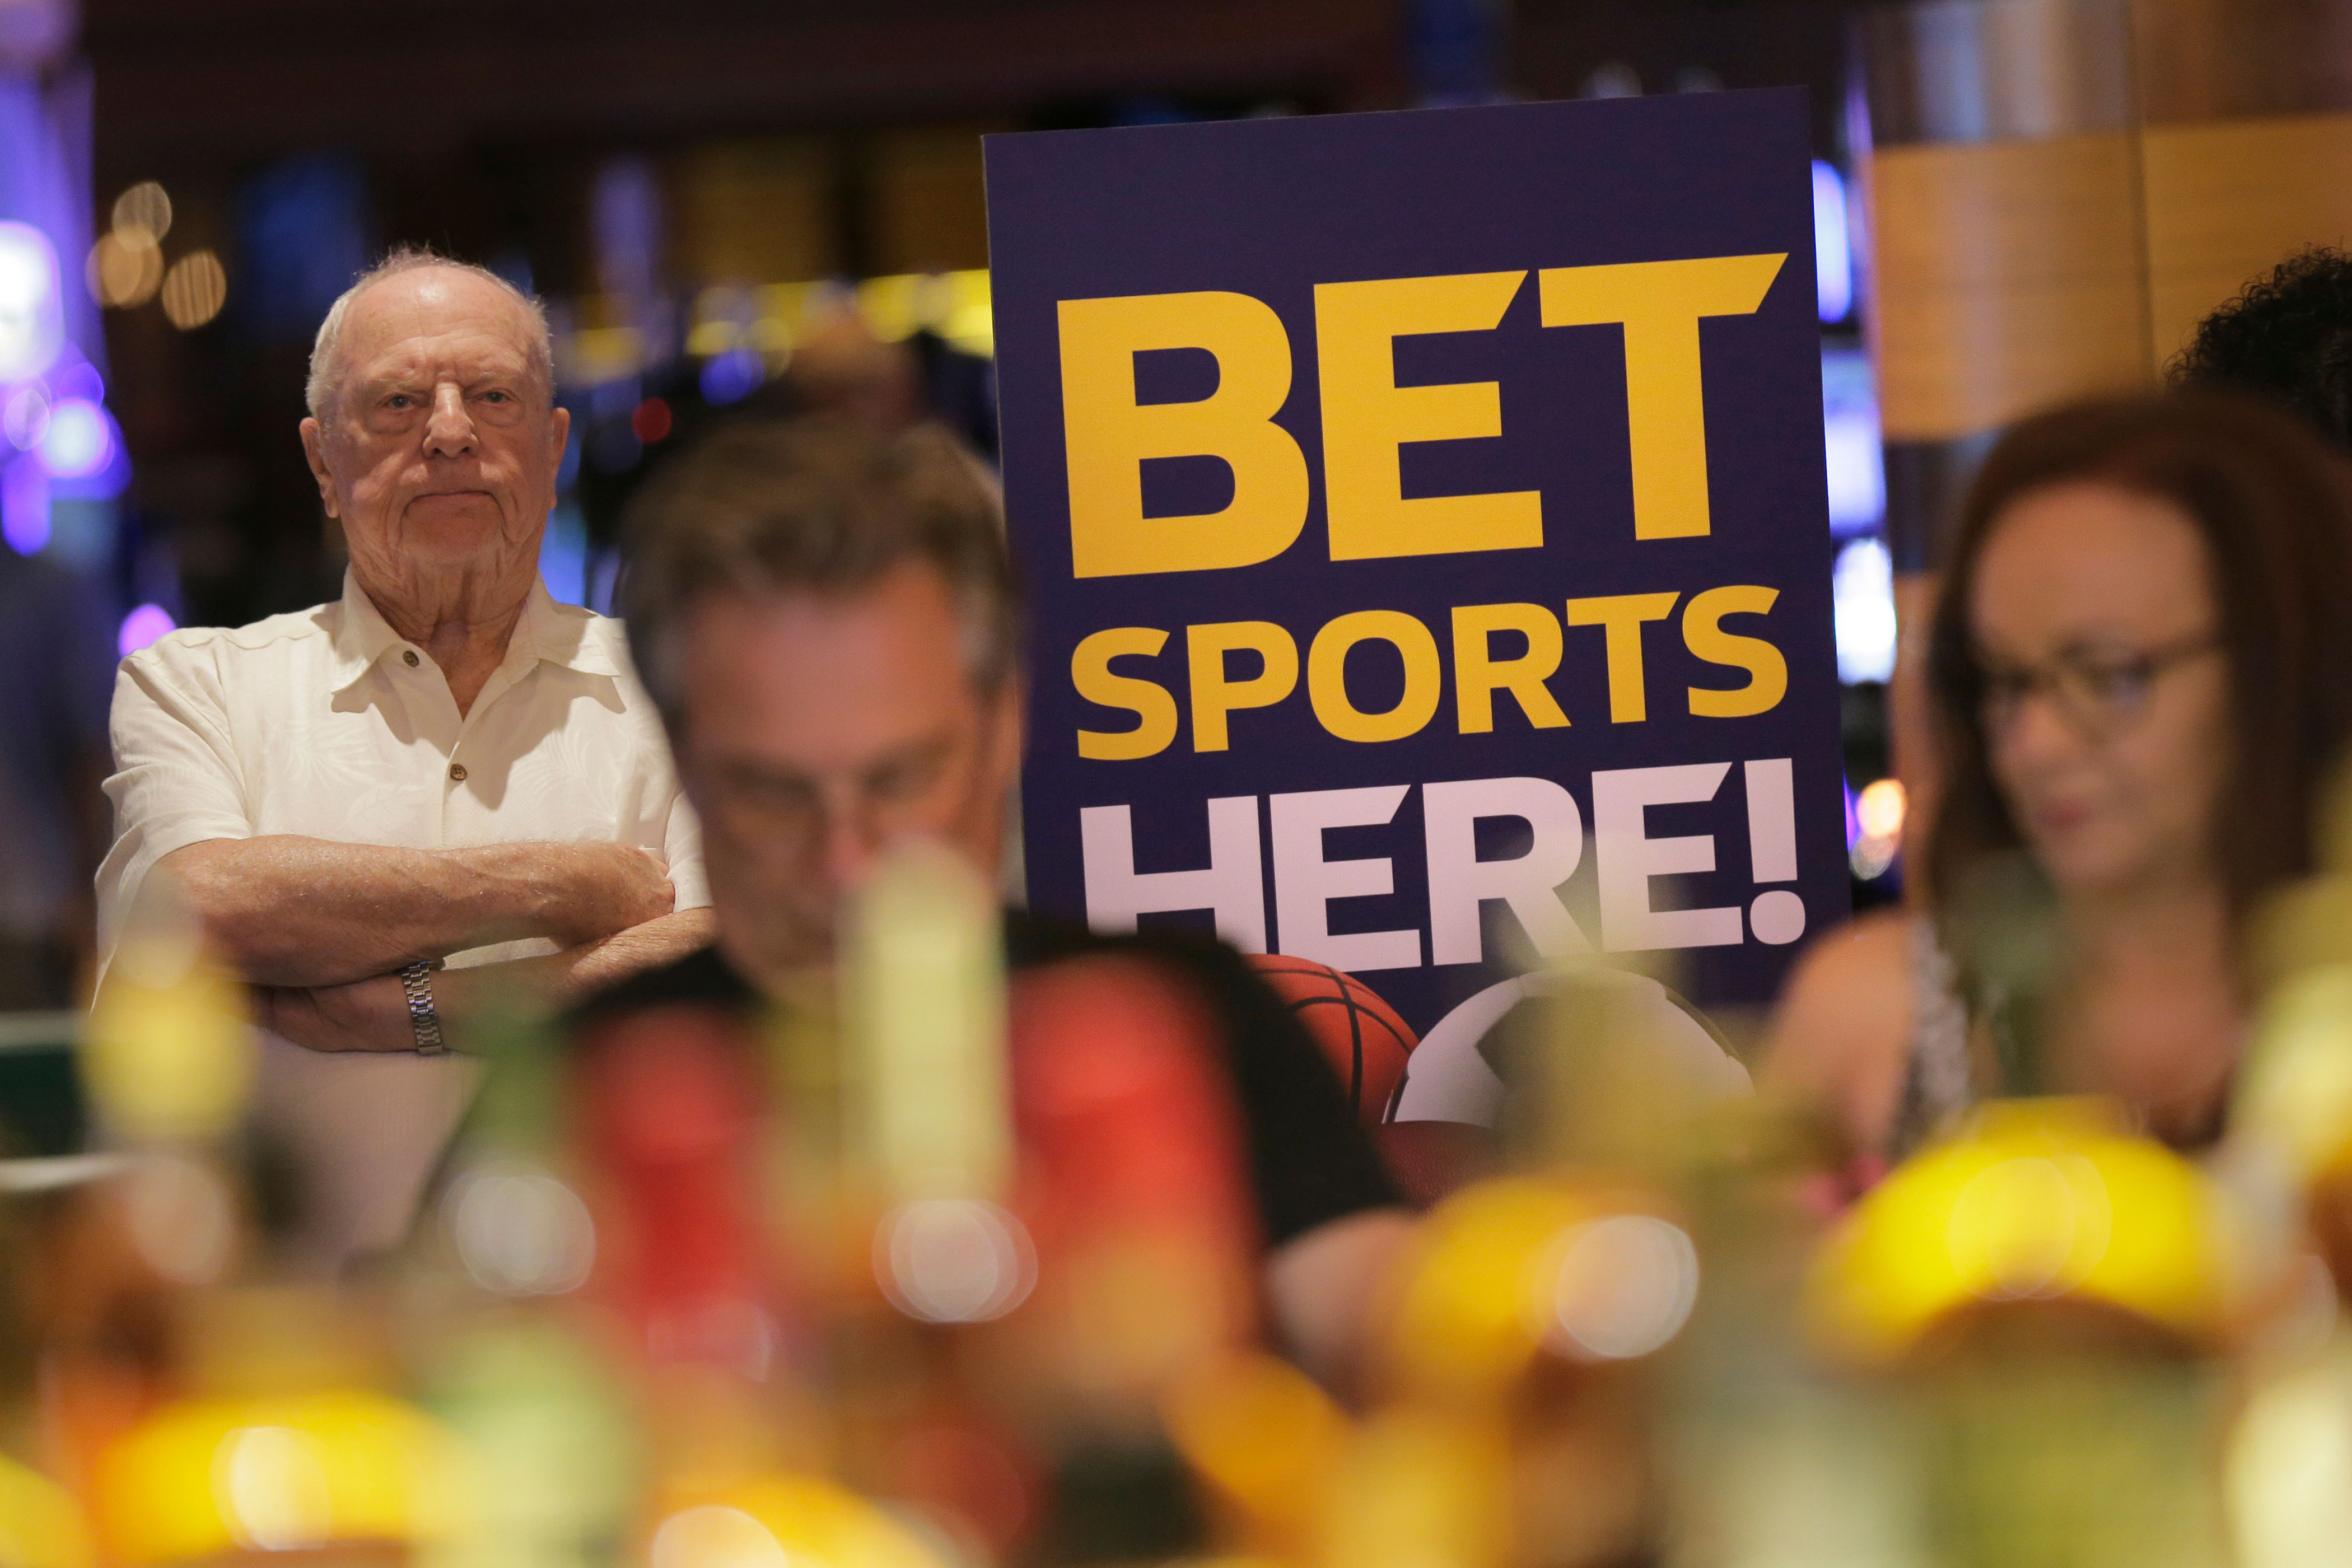 Nj sports betting referendum in ireland new doctor who actor betting trends